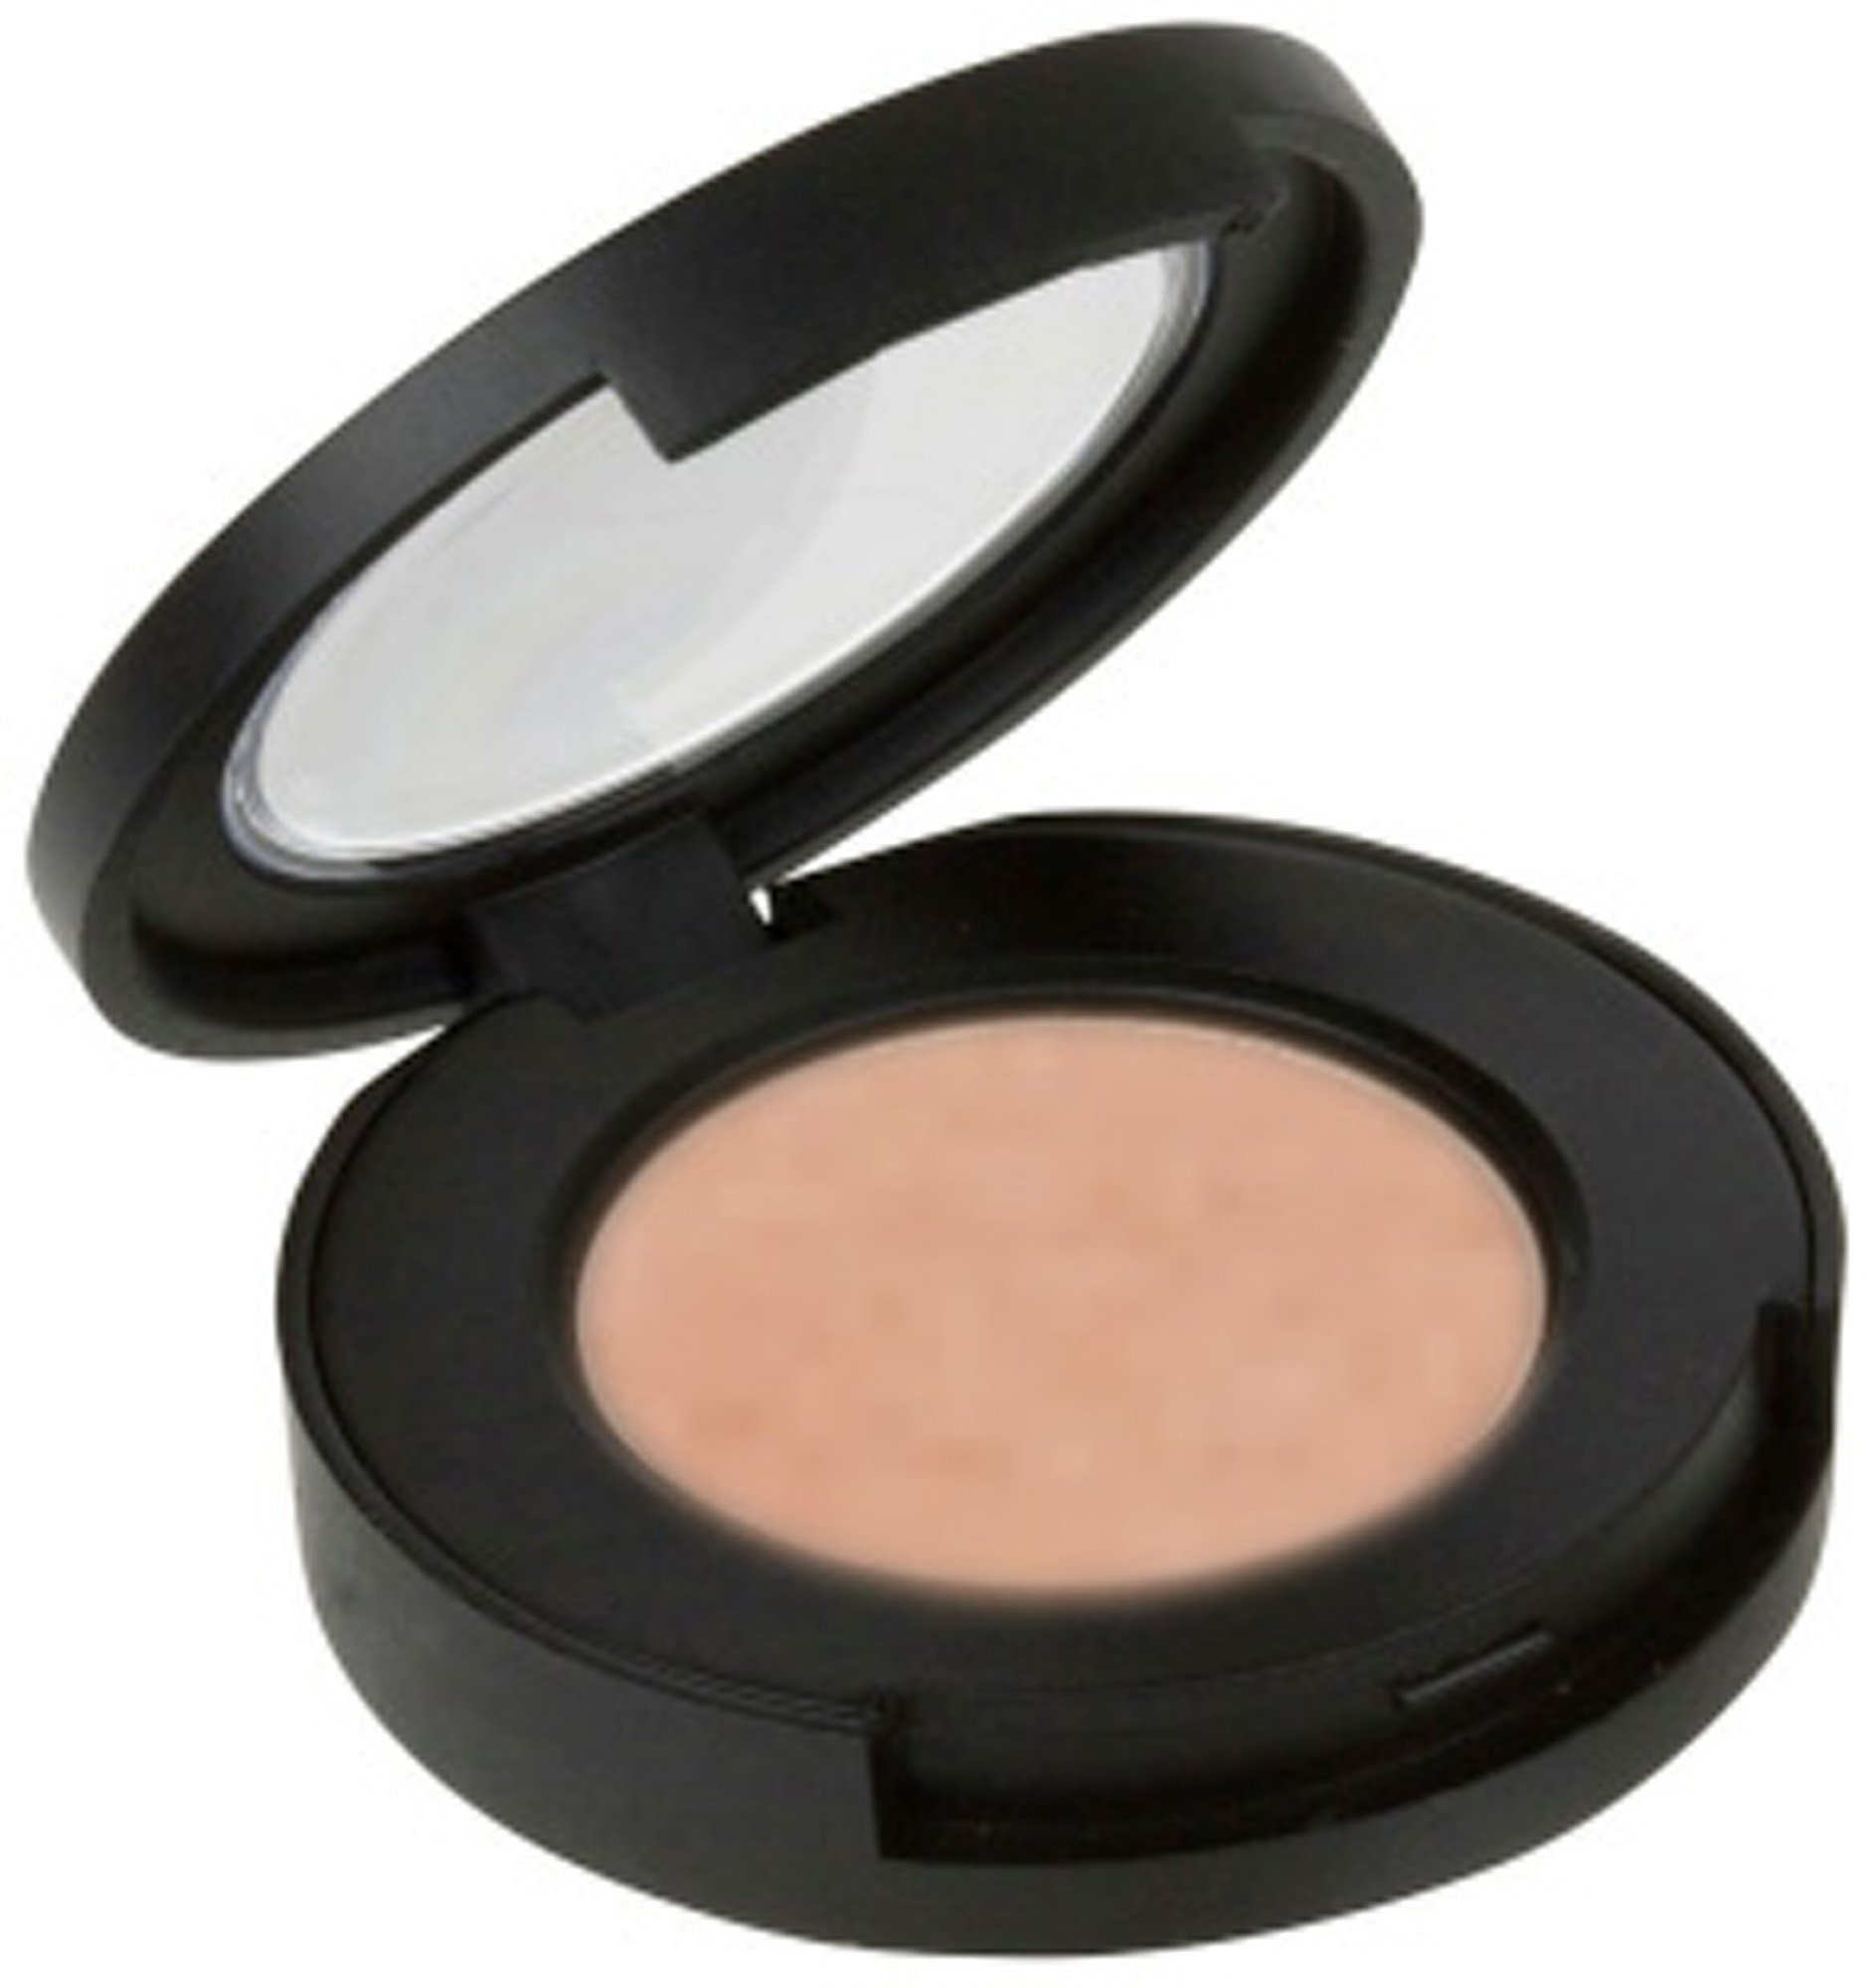 Mineral Eyeshadow - Frosted Peach #43 - Formulation and Foundation of Natural Minerals/Powder - Shades/Magic Finish to Apply and Grace Your Face. By Jill Kirsh Color, Hollywood's Guru of Hue